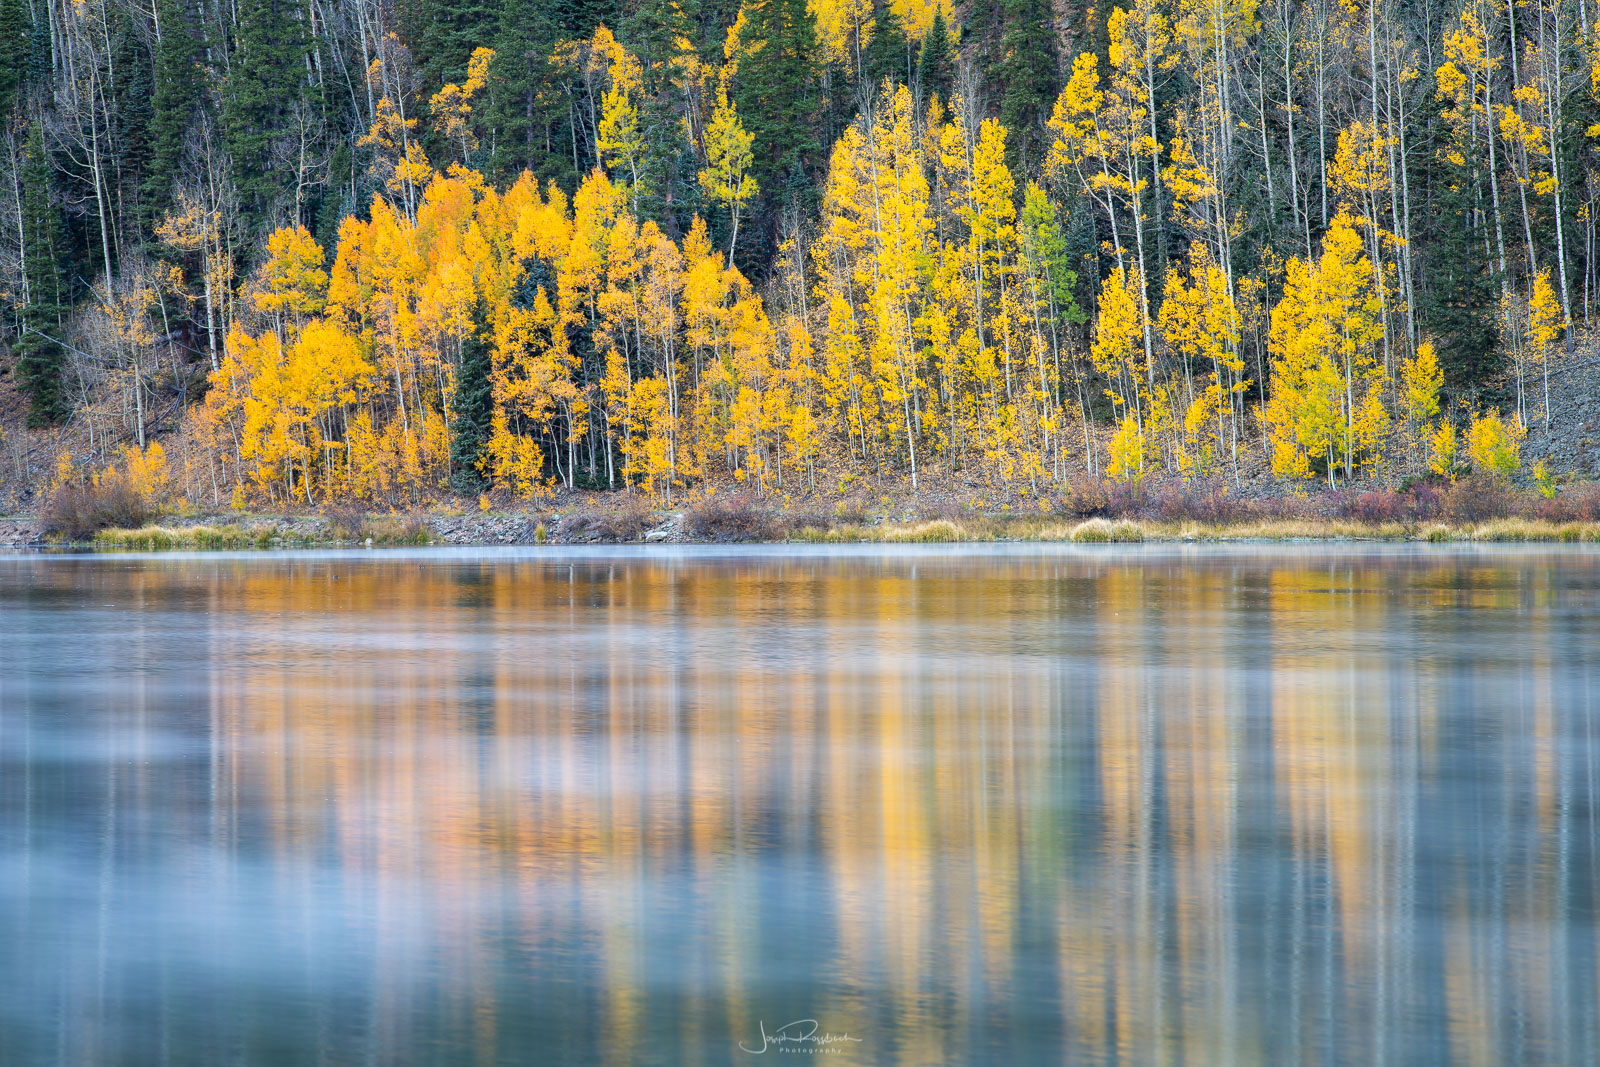 Morning reflections on Crystal Lake with peak autumn color.